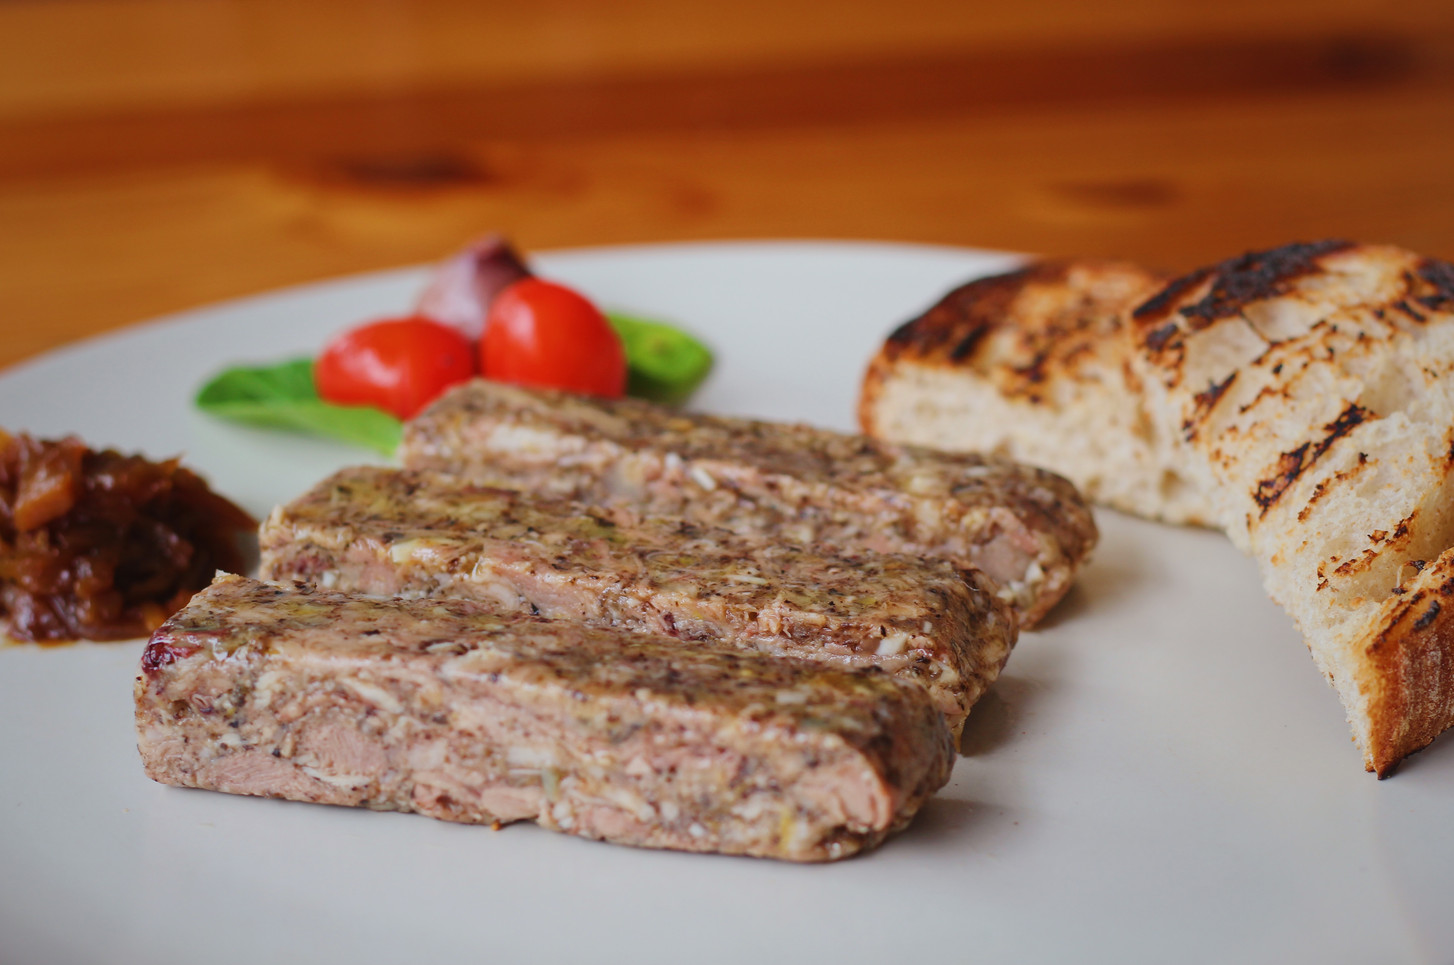 Country-style Pork Pate